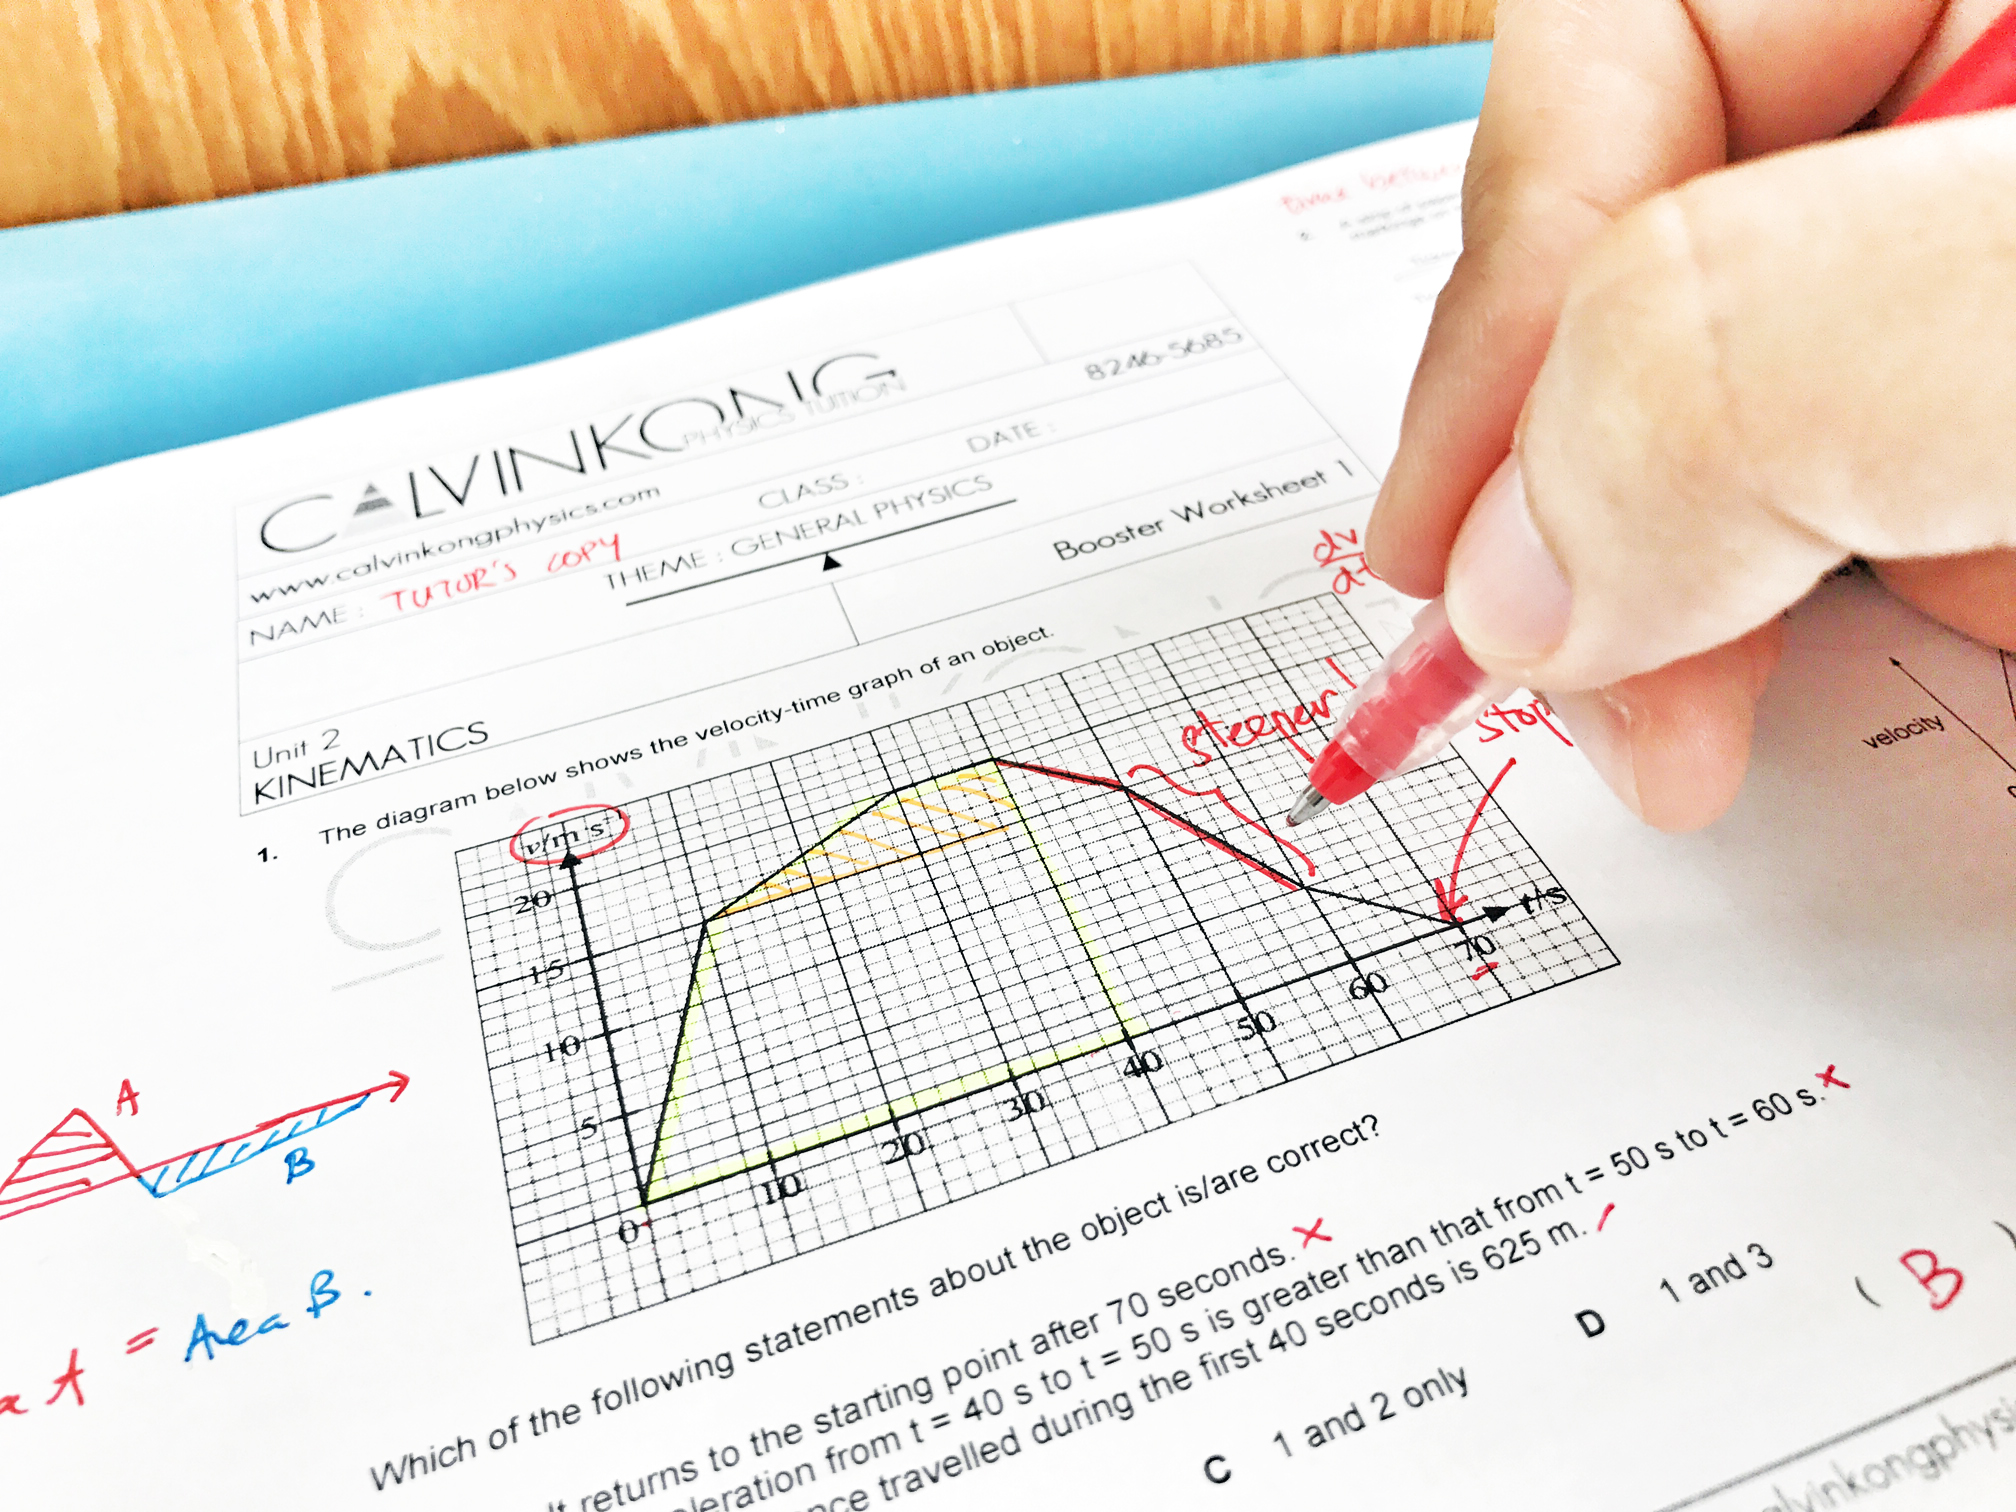 When Calvin Kong creates a new worksheet, he will put himself in the shoes of his students and do it. In doing so, he is able to anticipate the conceptual challenges faced by the students, ensures there is enough writing and sketching space, eliminates typographical errors and even ensure consistent font and sizes so that his students only receive the best learning experience.